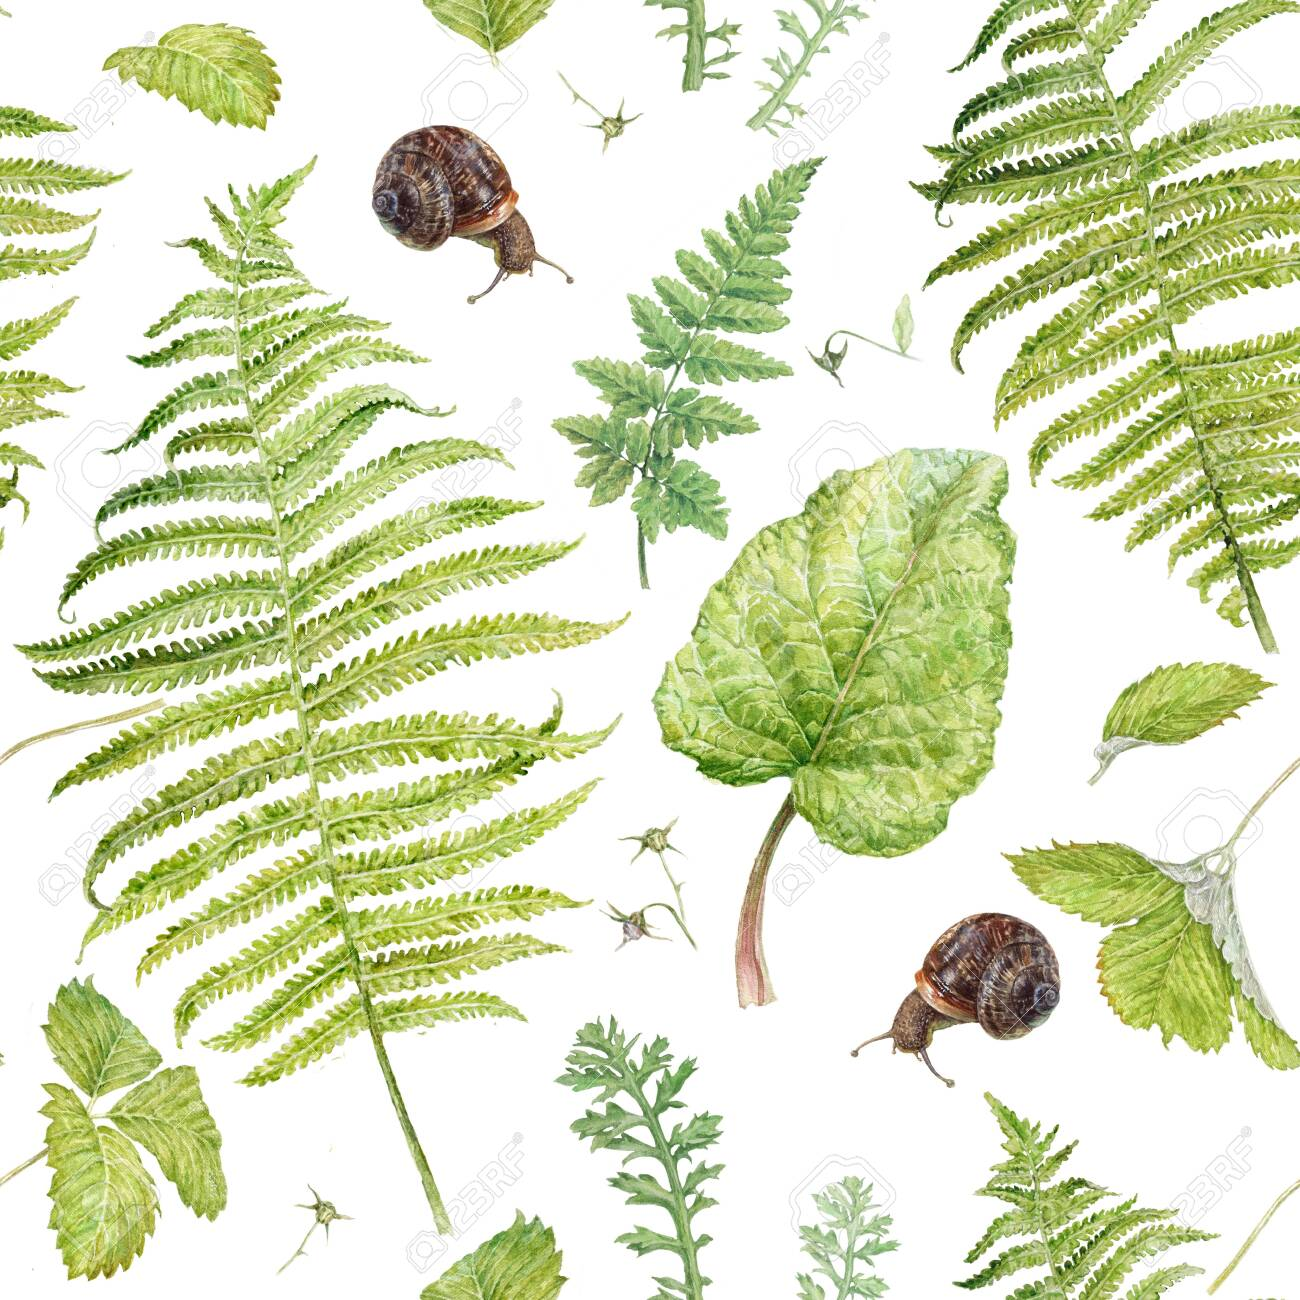 Watercolor pattern with forest plants and snails - 135537686